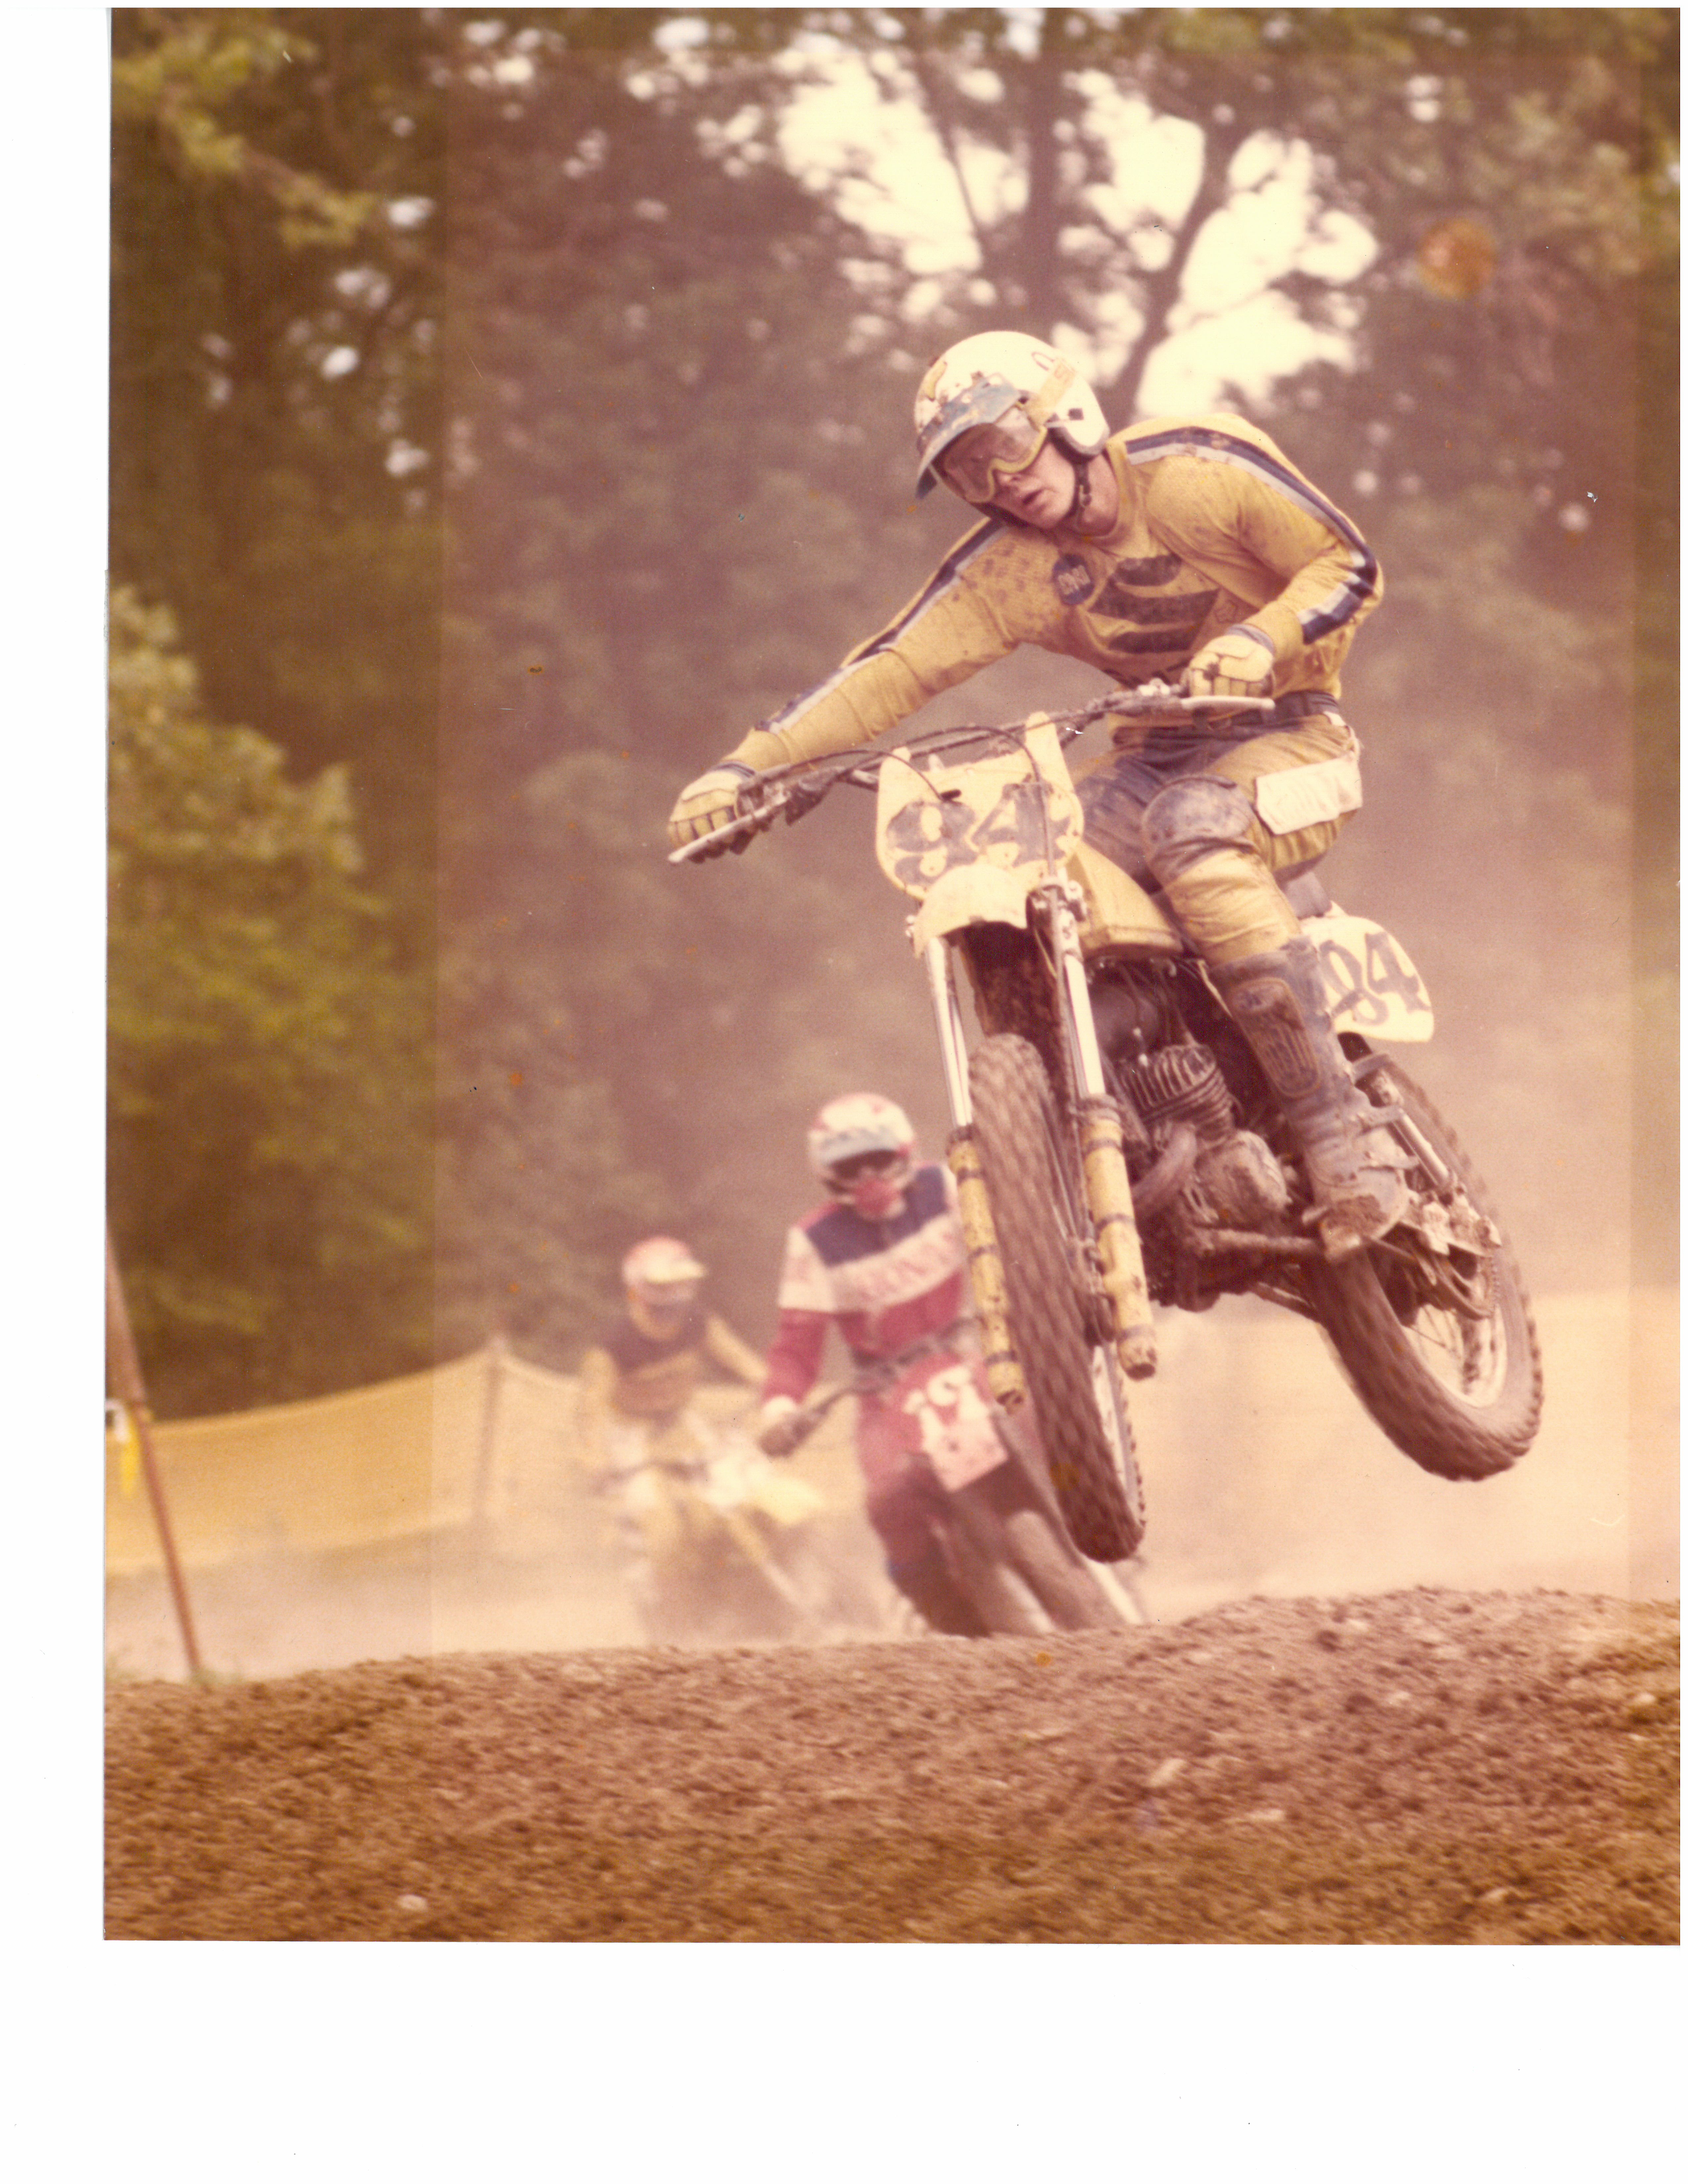 Before becoming paralyzed, Martin raced motocross. Buying a threewheeled motorcycle is on his bucket list.